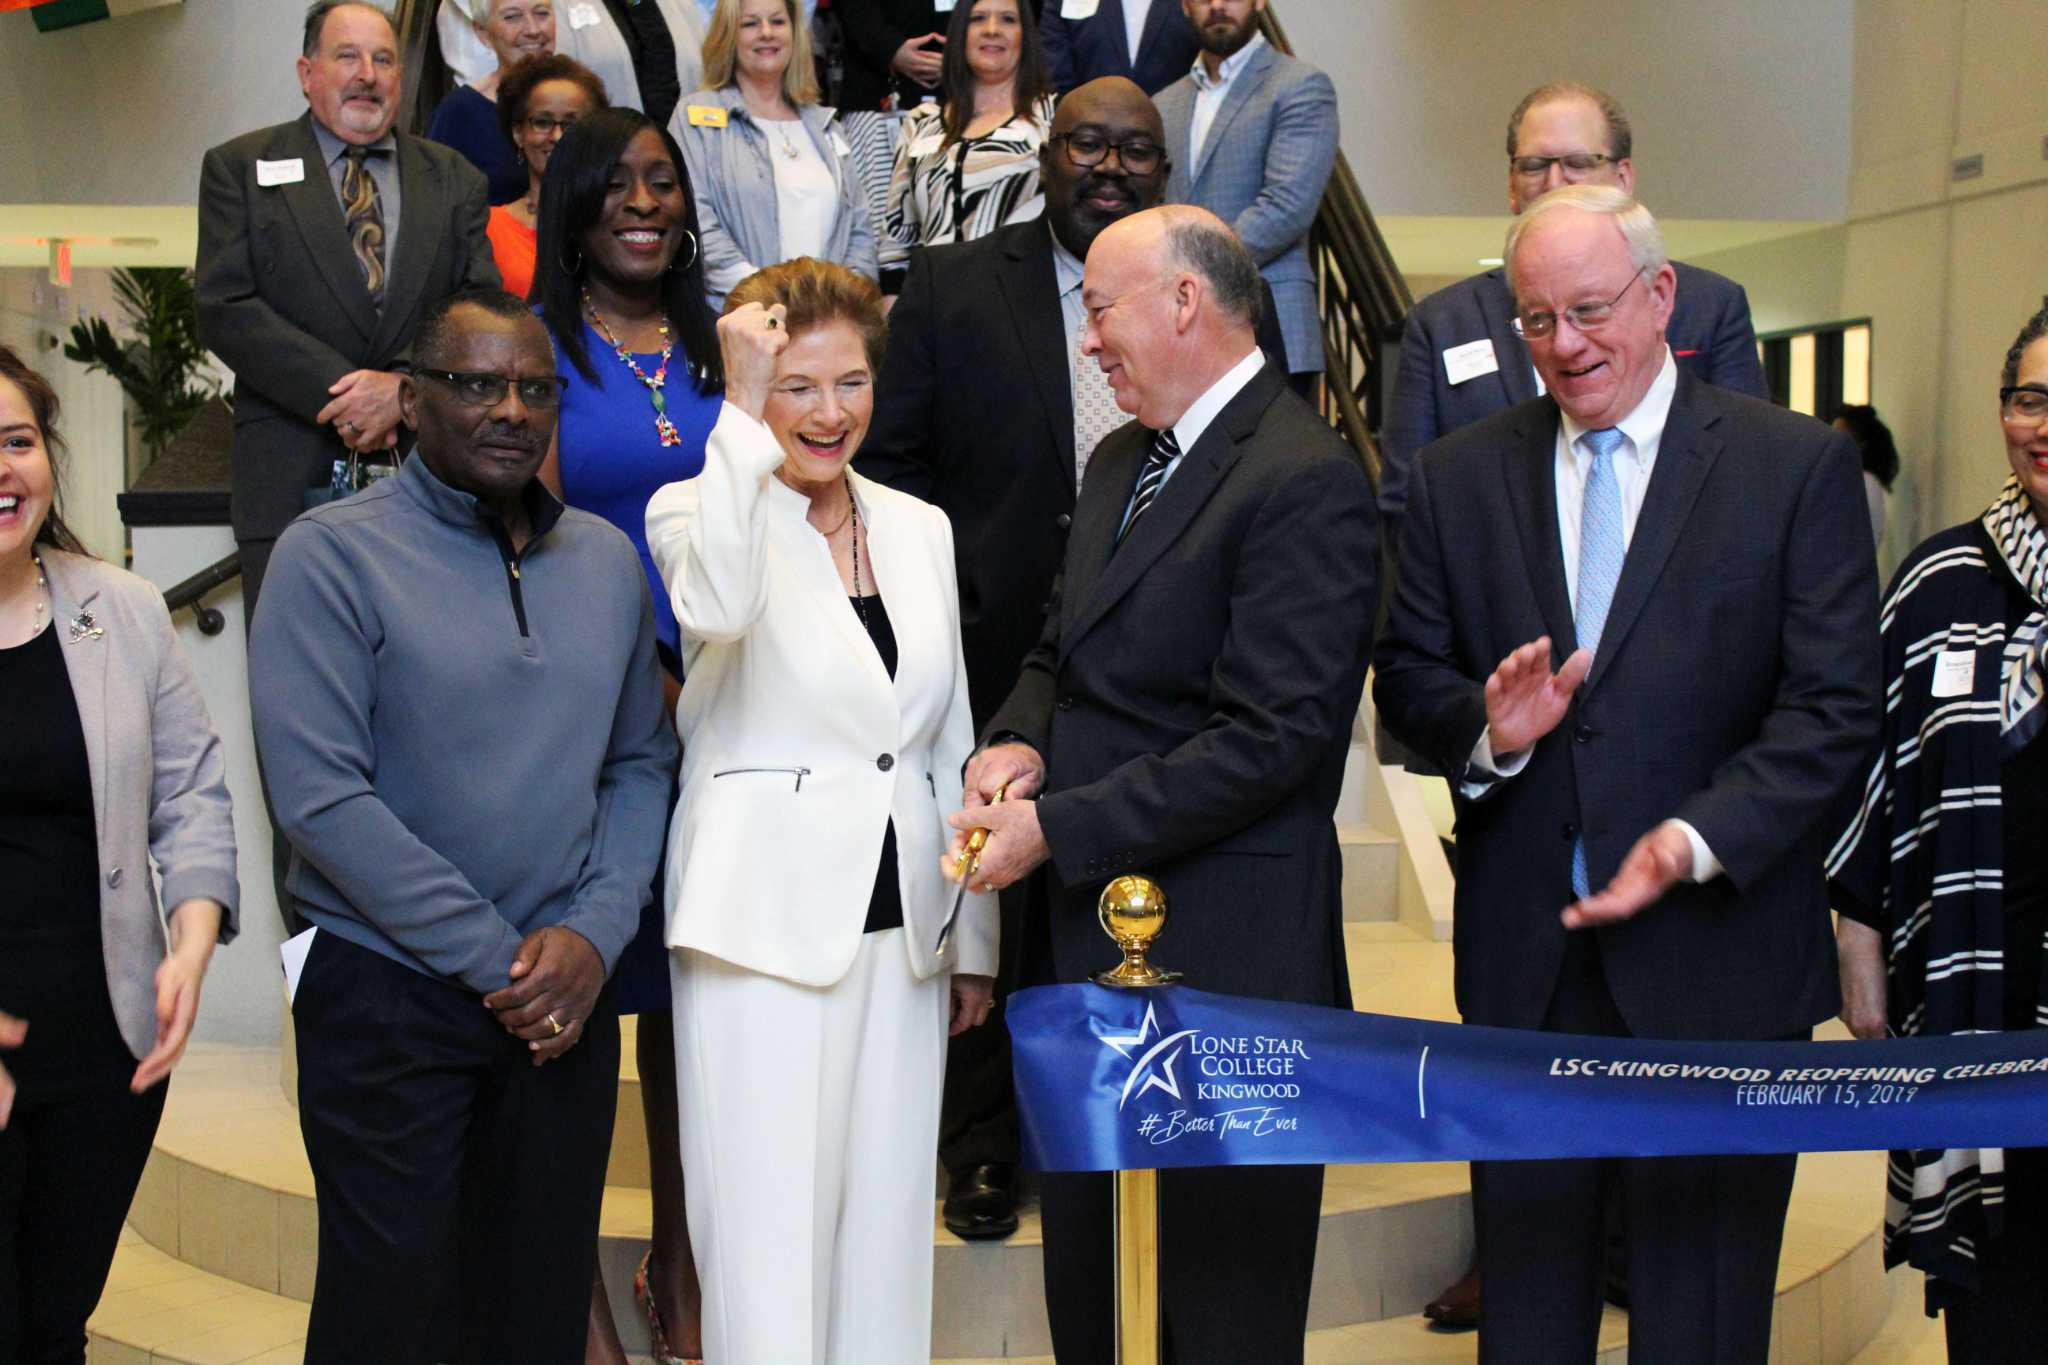 Lone Star College celebrates grand reopening of the Kingwood campus